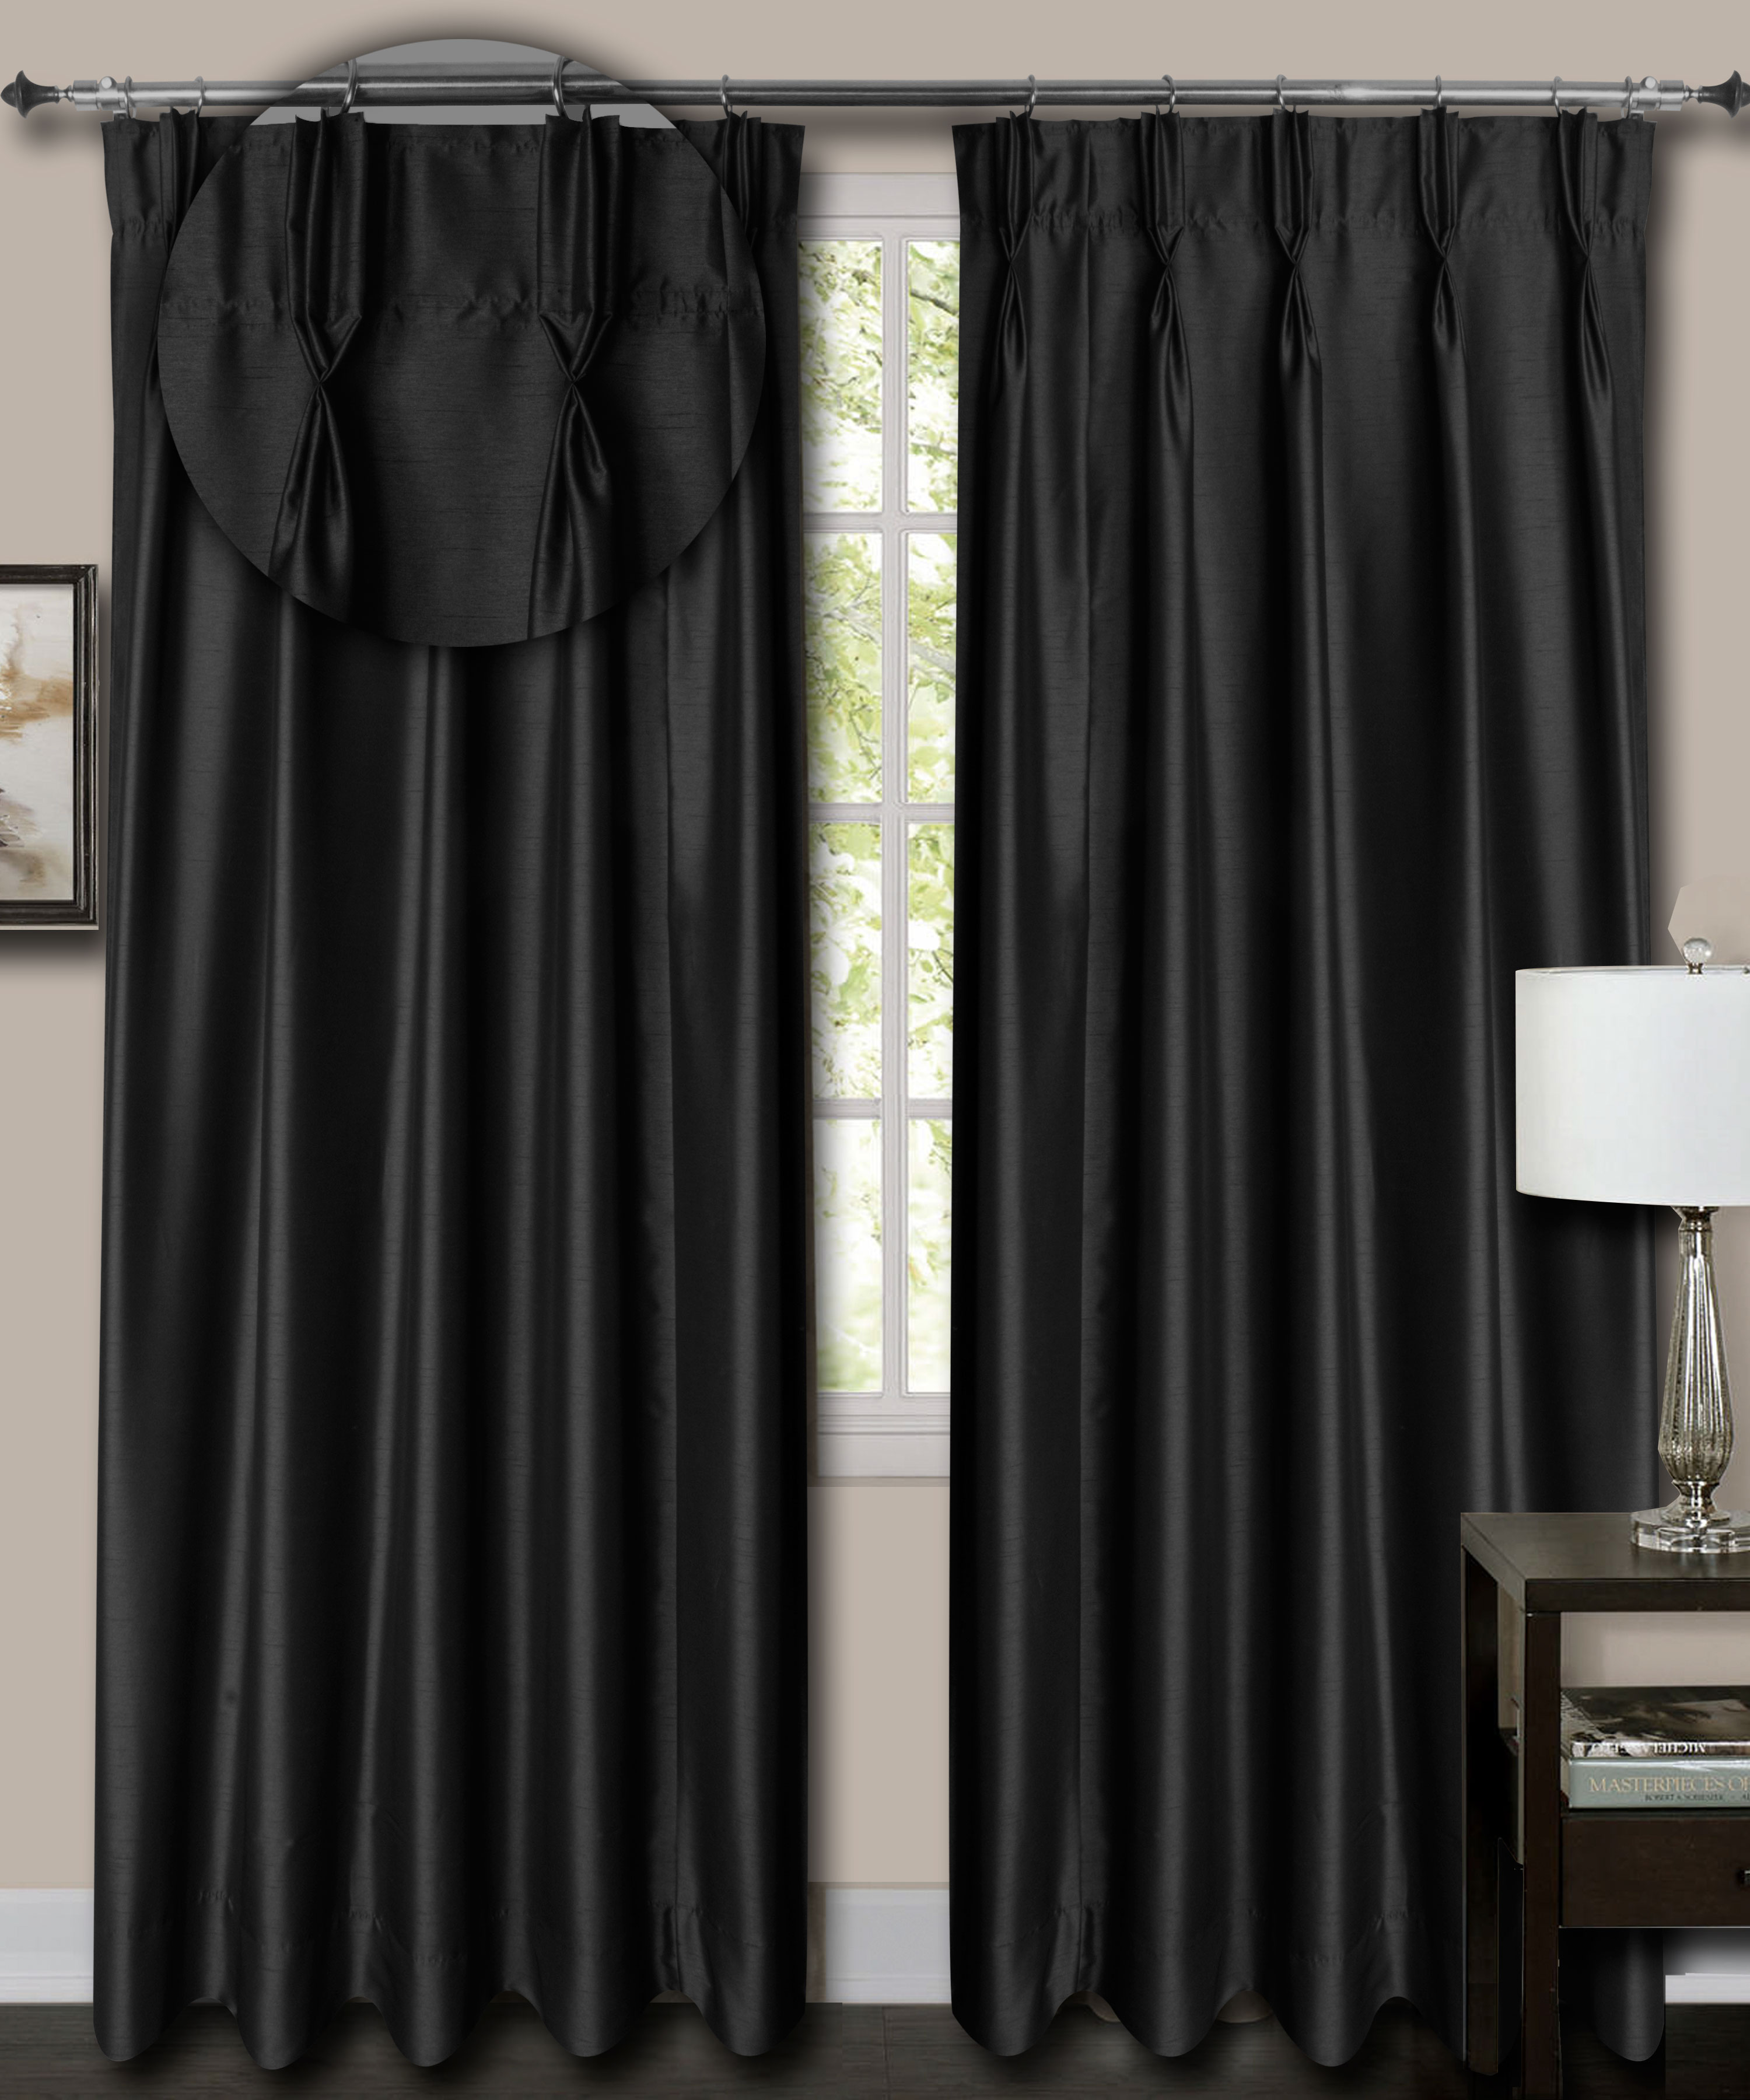 """French Pleat Top Black Faux Silk Dupioni Curtains. (52"""" Wide,10 Feet Long,Blackout Lining)"""